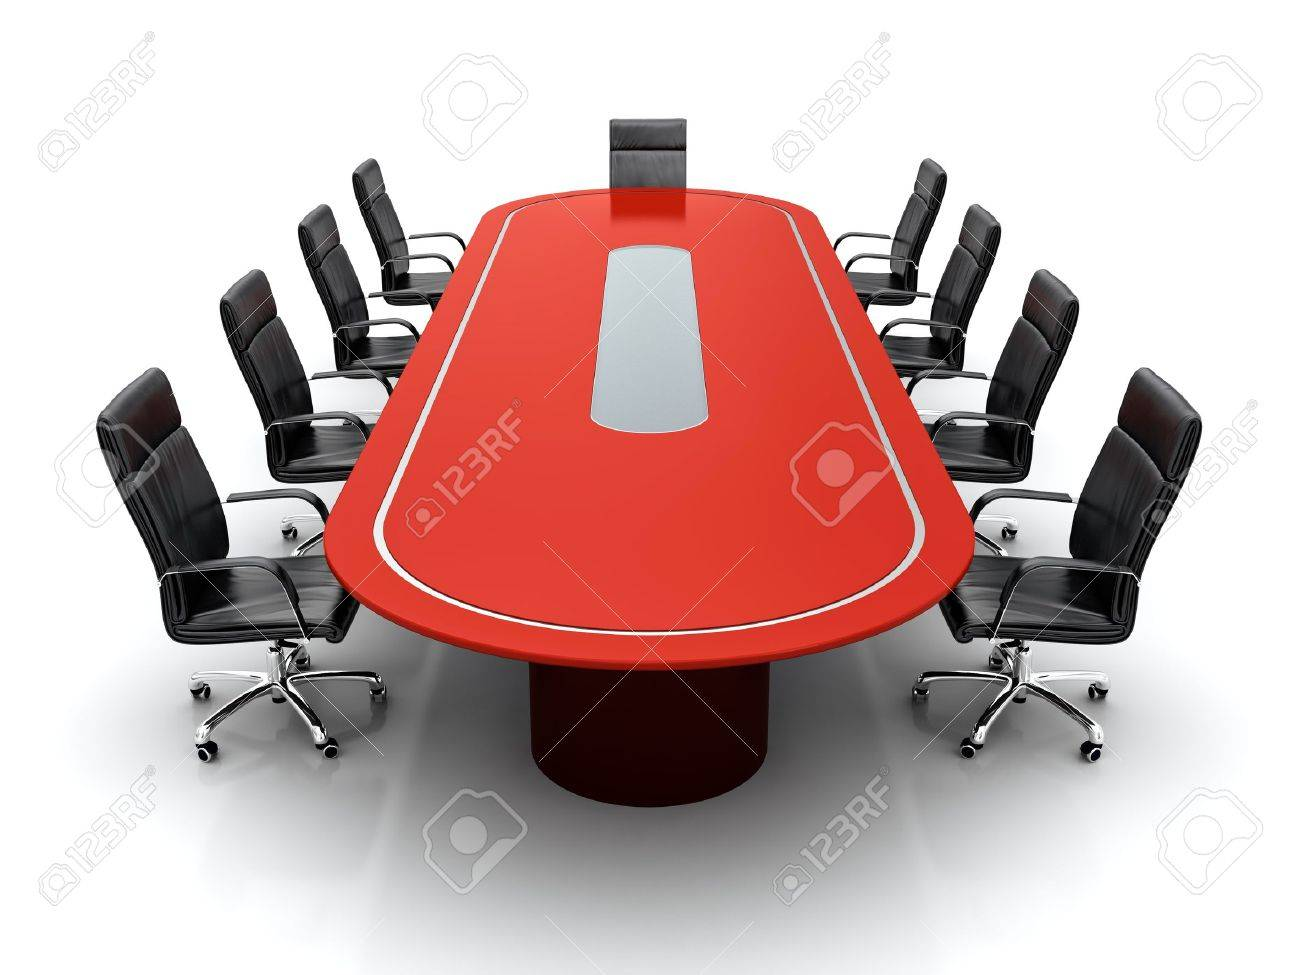 Red conference room chairs - 3d Render Of Red Conference Table With Black Leather Chairs On White Background Stock Photo